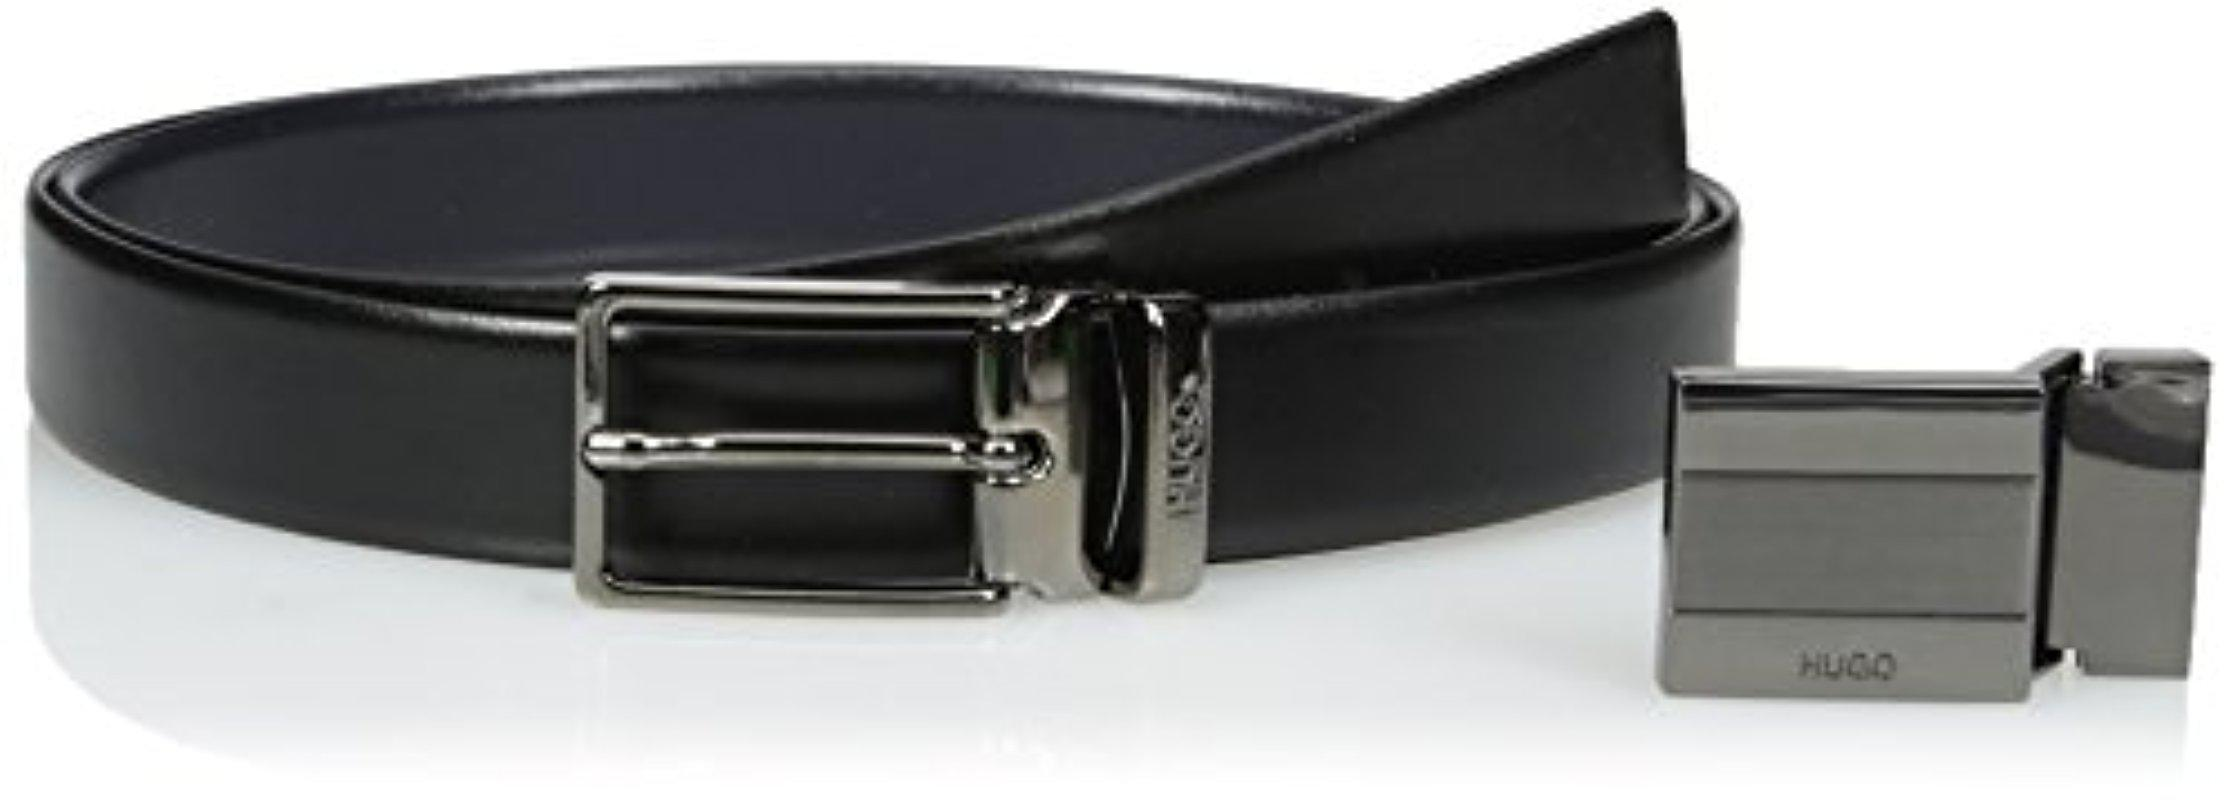 unique style classic style of 2019 detailed pictures Hugo By Gerk Reversible Italian Leather Belt Gift Box Set,